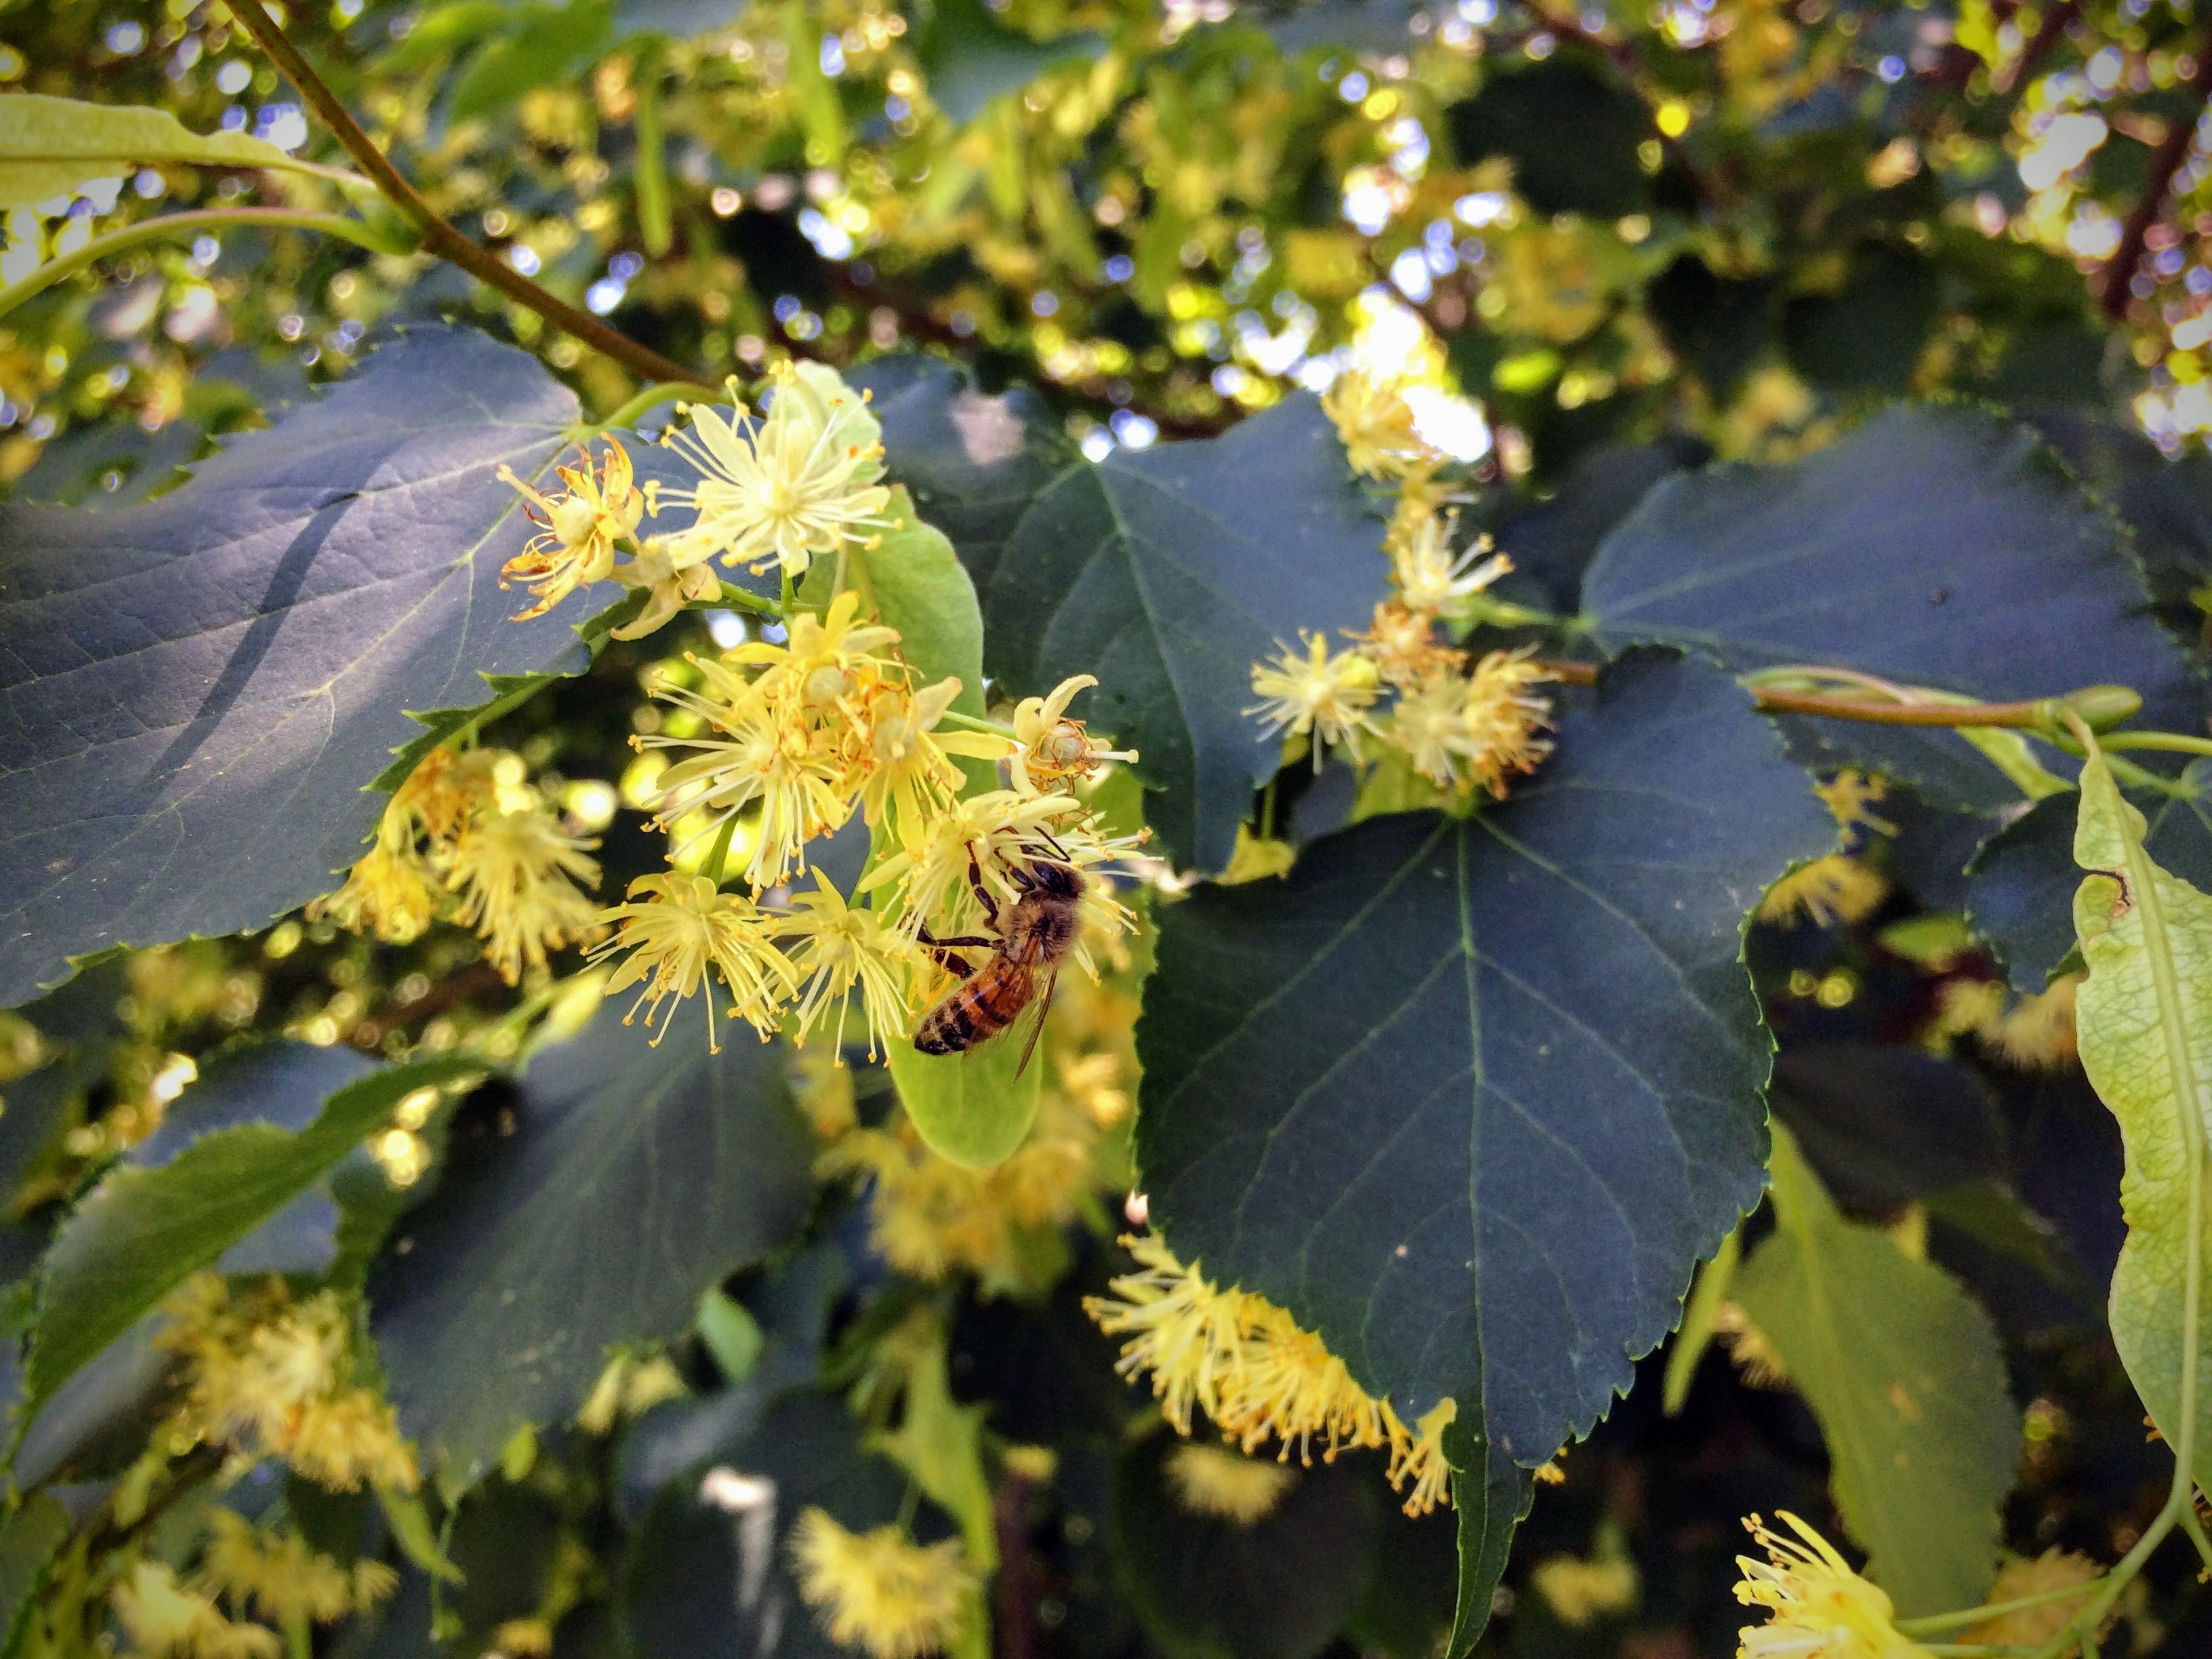 Honey Bee pollinating and collecting nectar on a Linden tree blossom